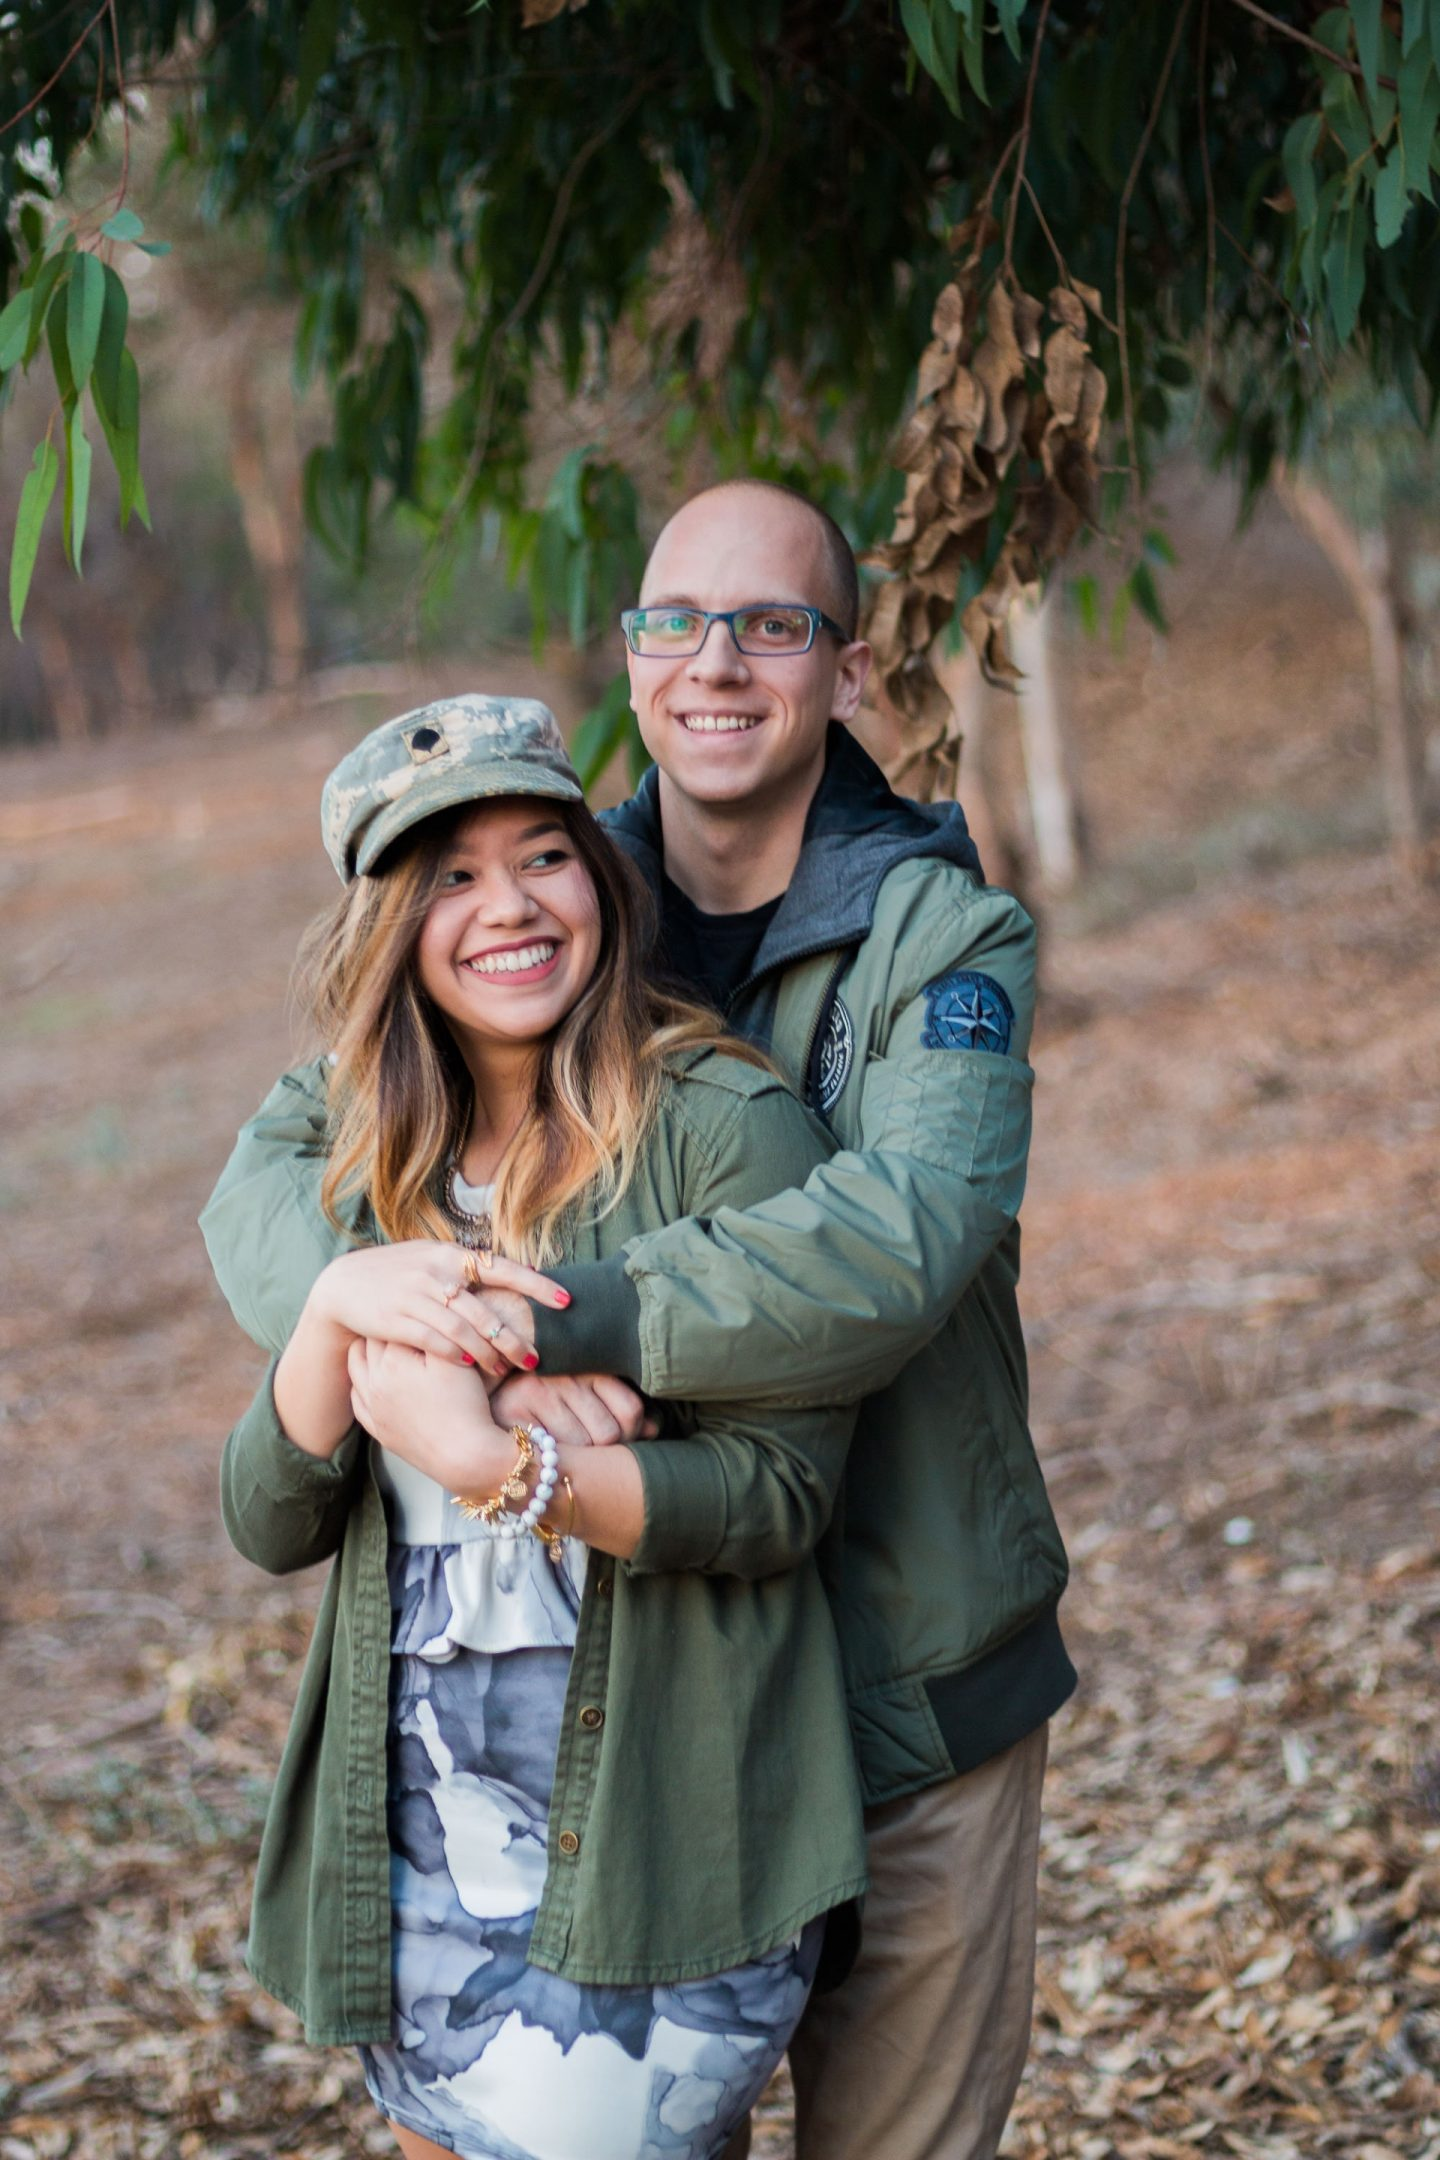 Veterans Day Special: Military Jackets Featuring my Army Boyfriend